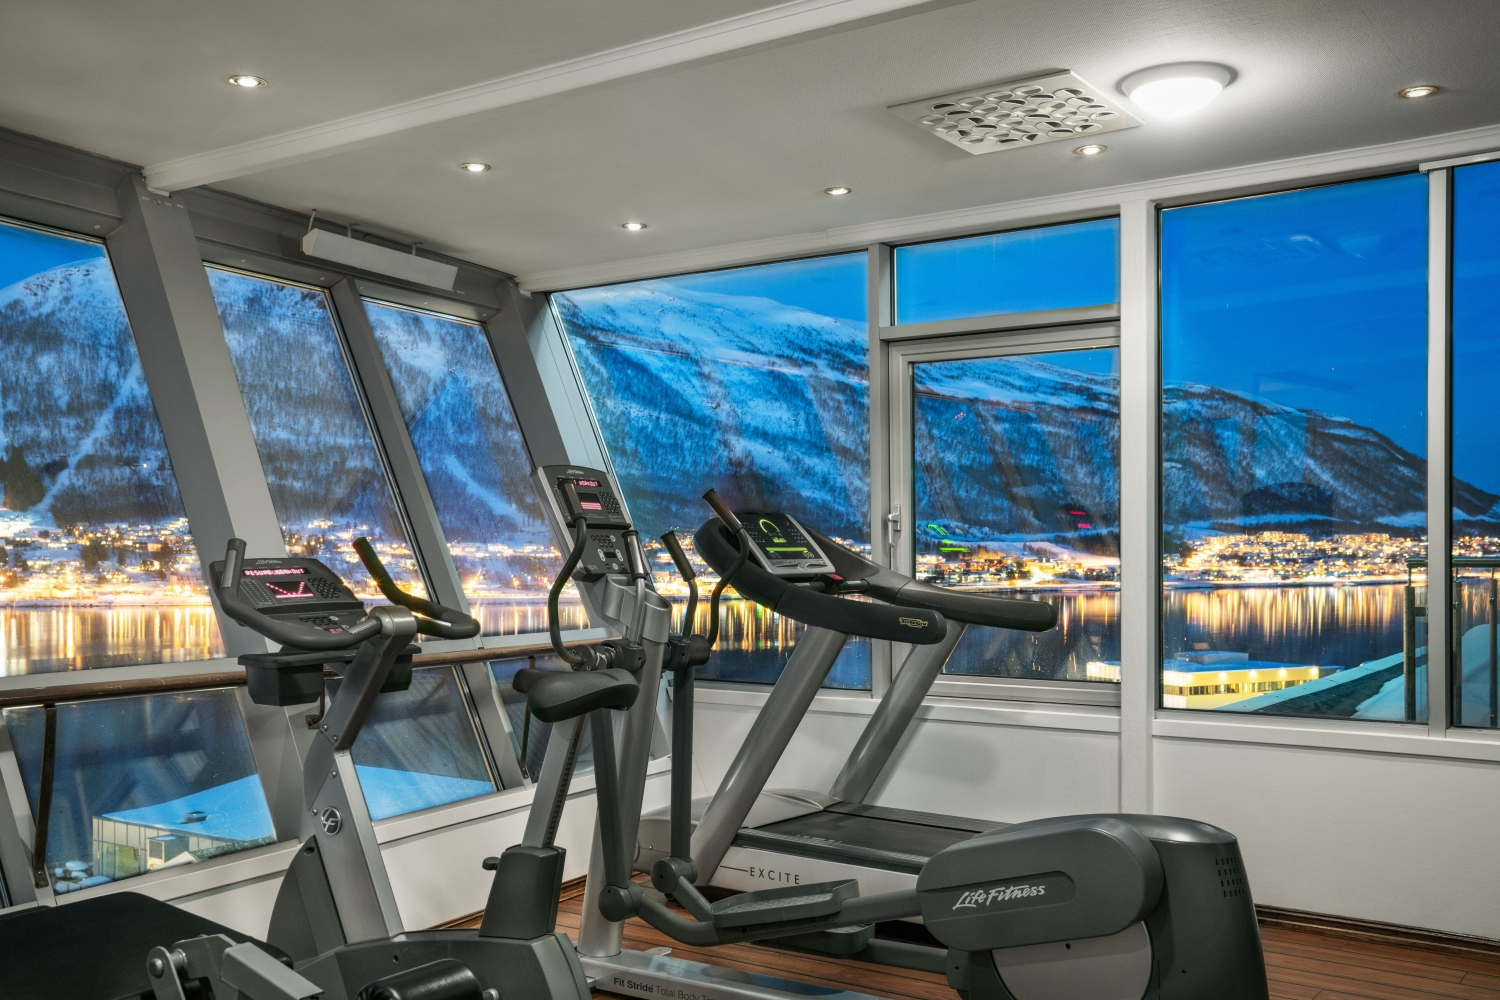 a gym with treadmils and an amazing view